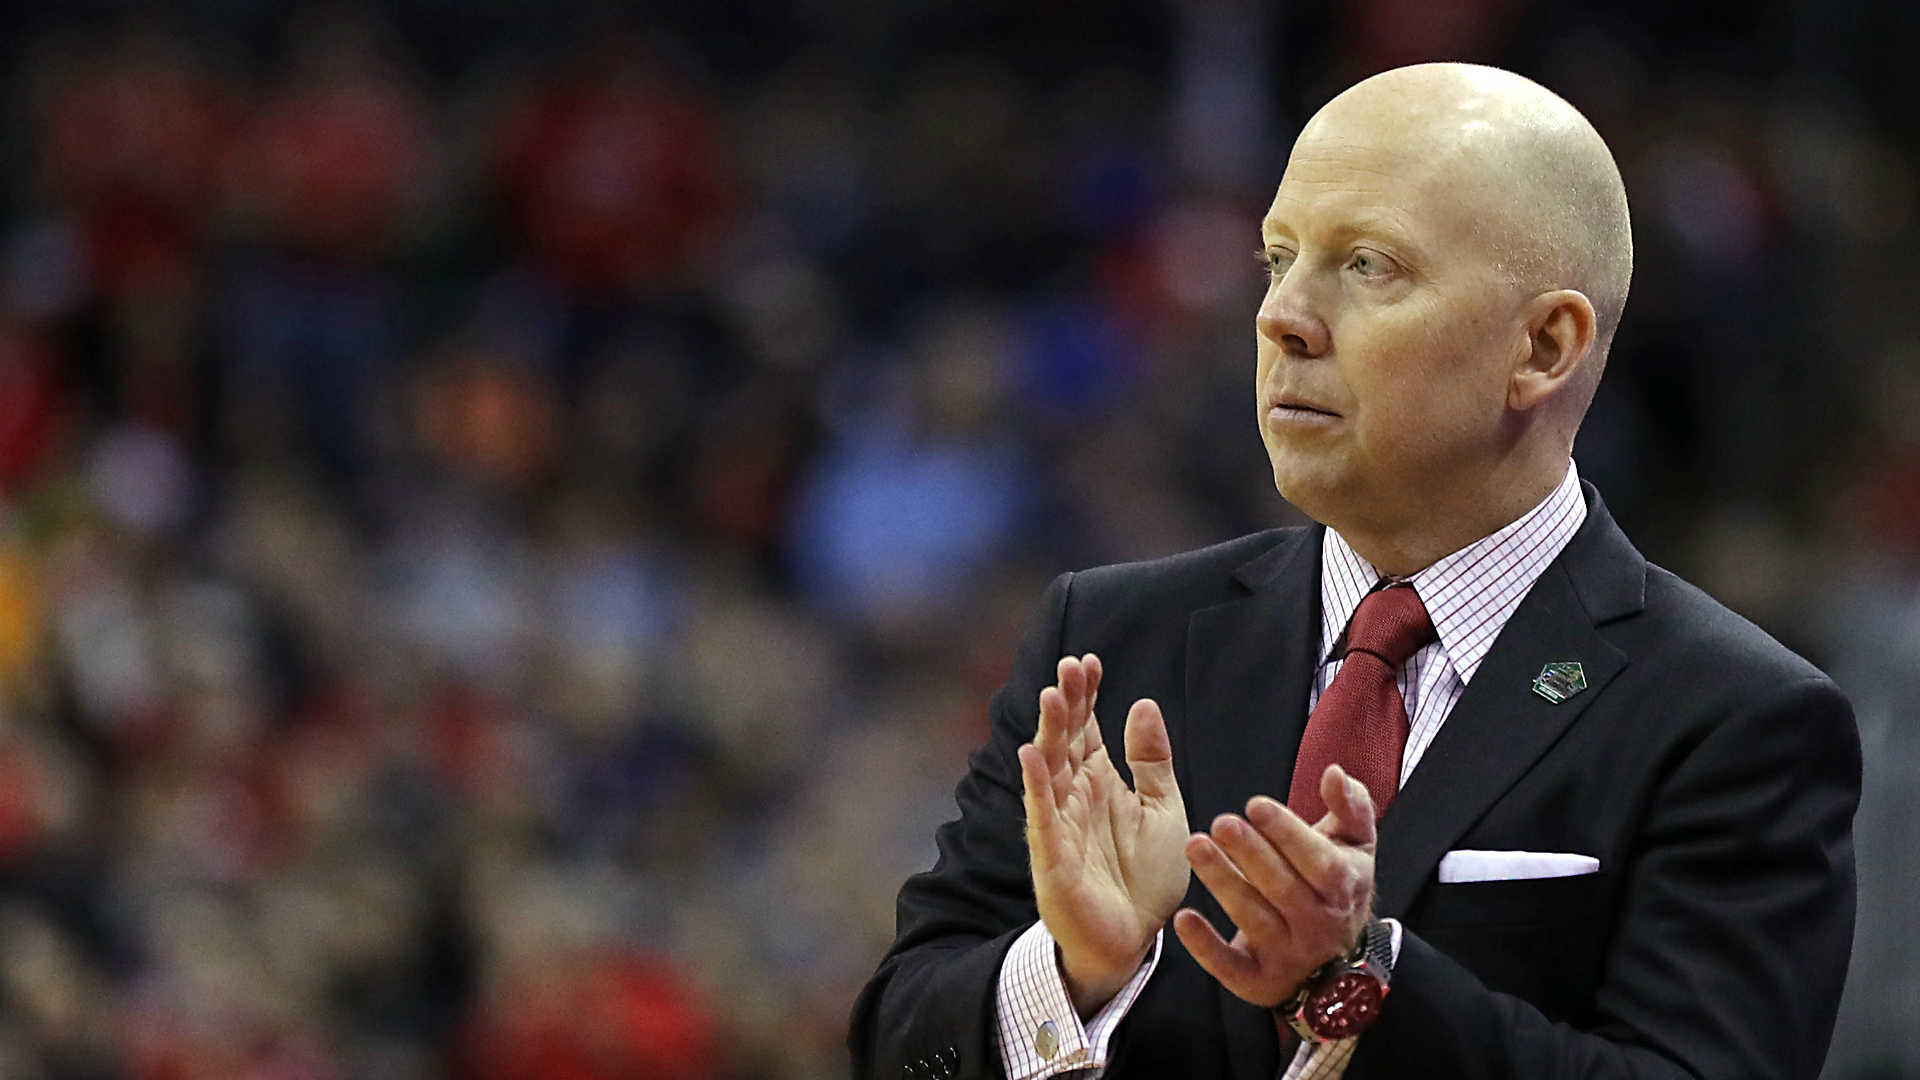 UCLA finally hires a men's basketball coach, plucking Mick Cronin from Cincinnati